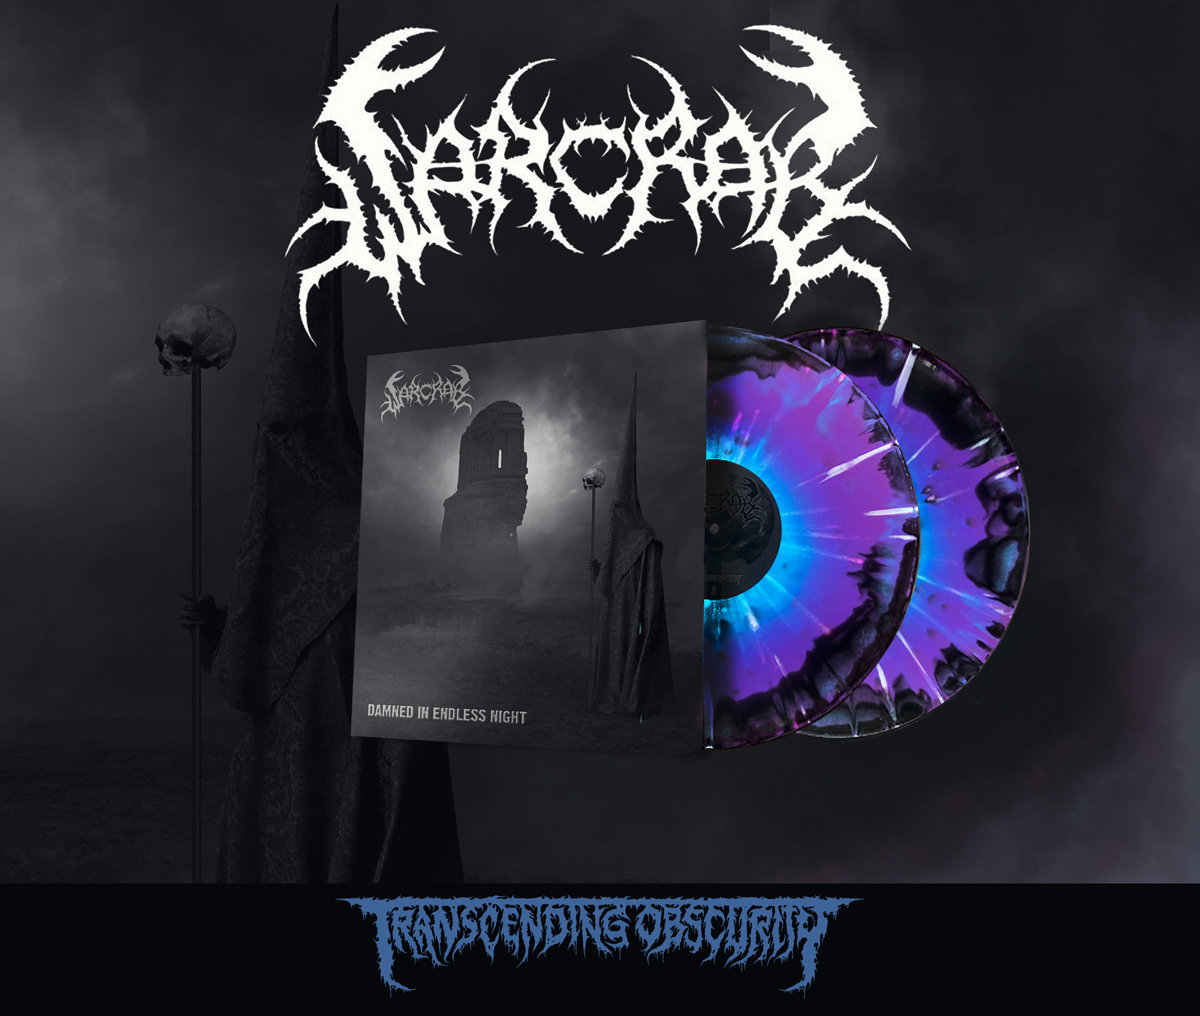 WARCRAB Blue/Purple Merge with Splatter Double LP with silver effect sleeves with embossing and UV lamination (Limited to 100)